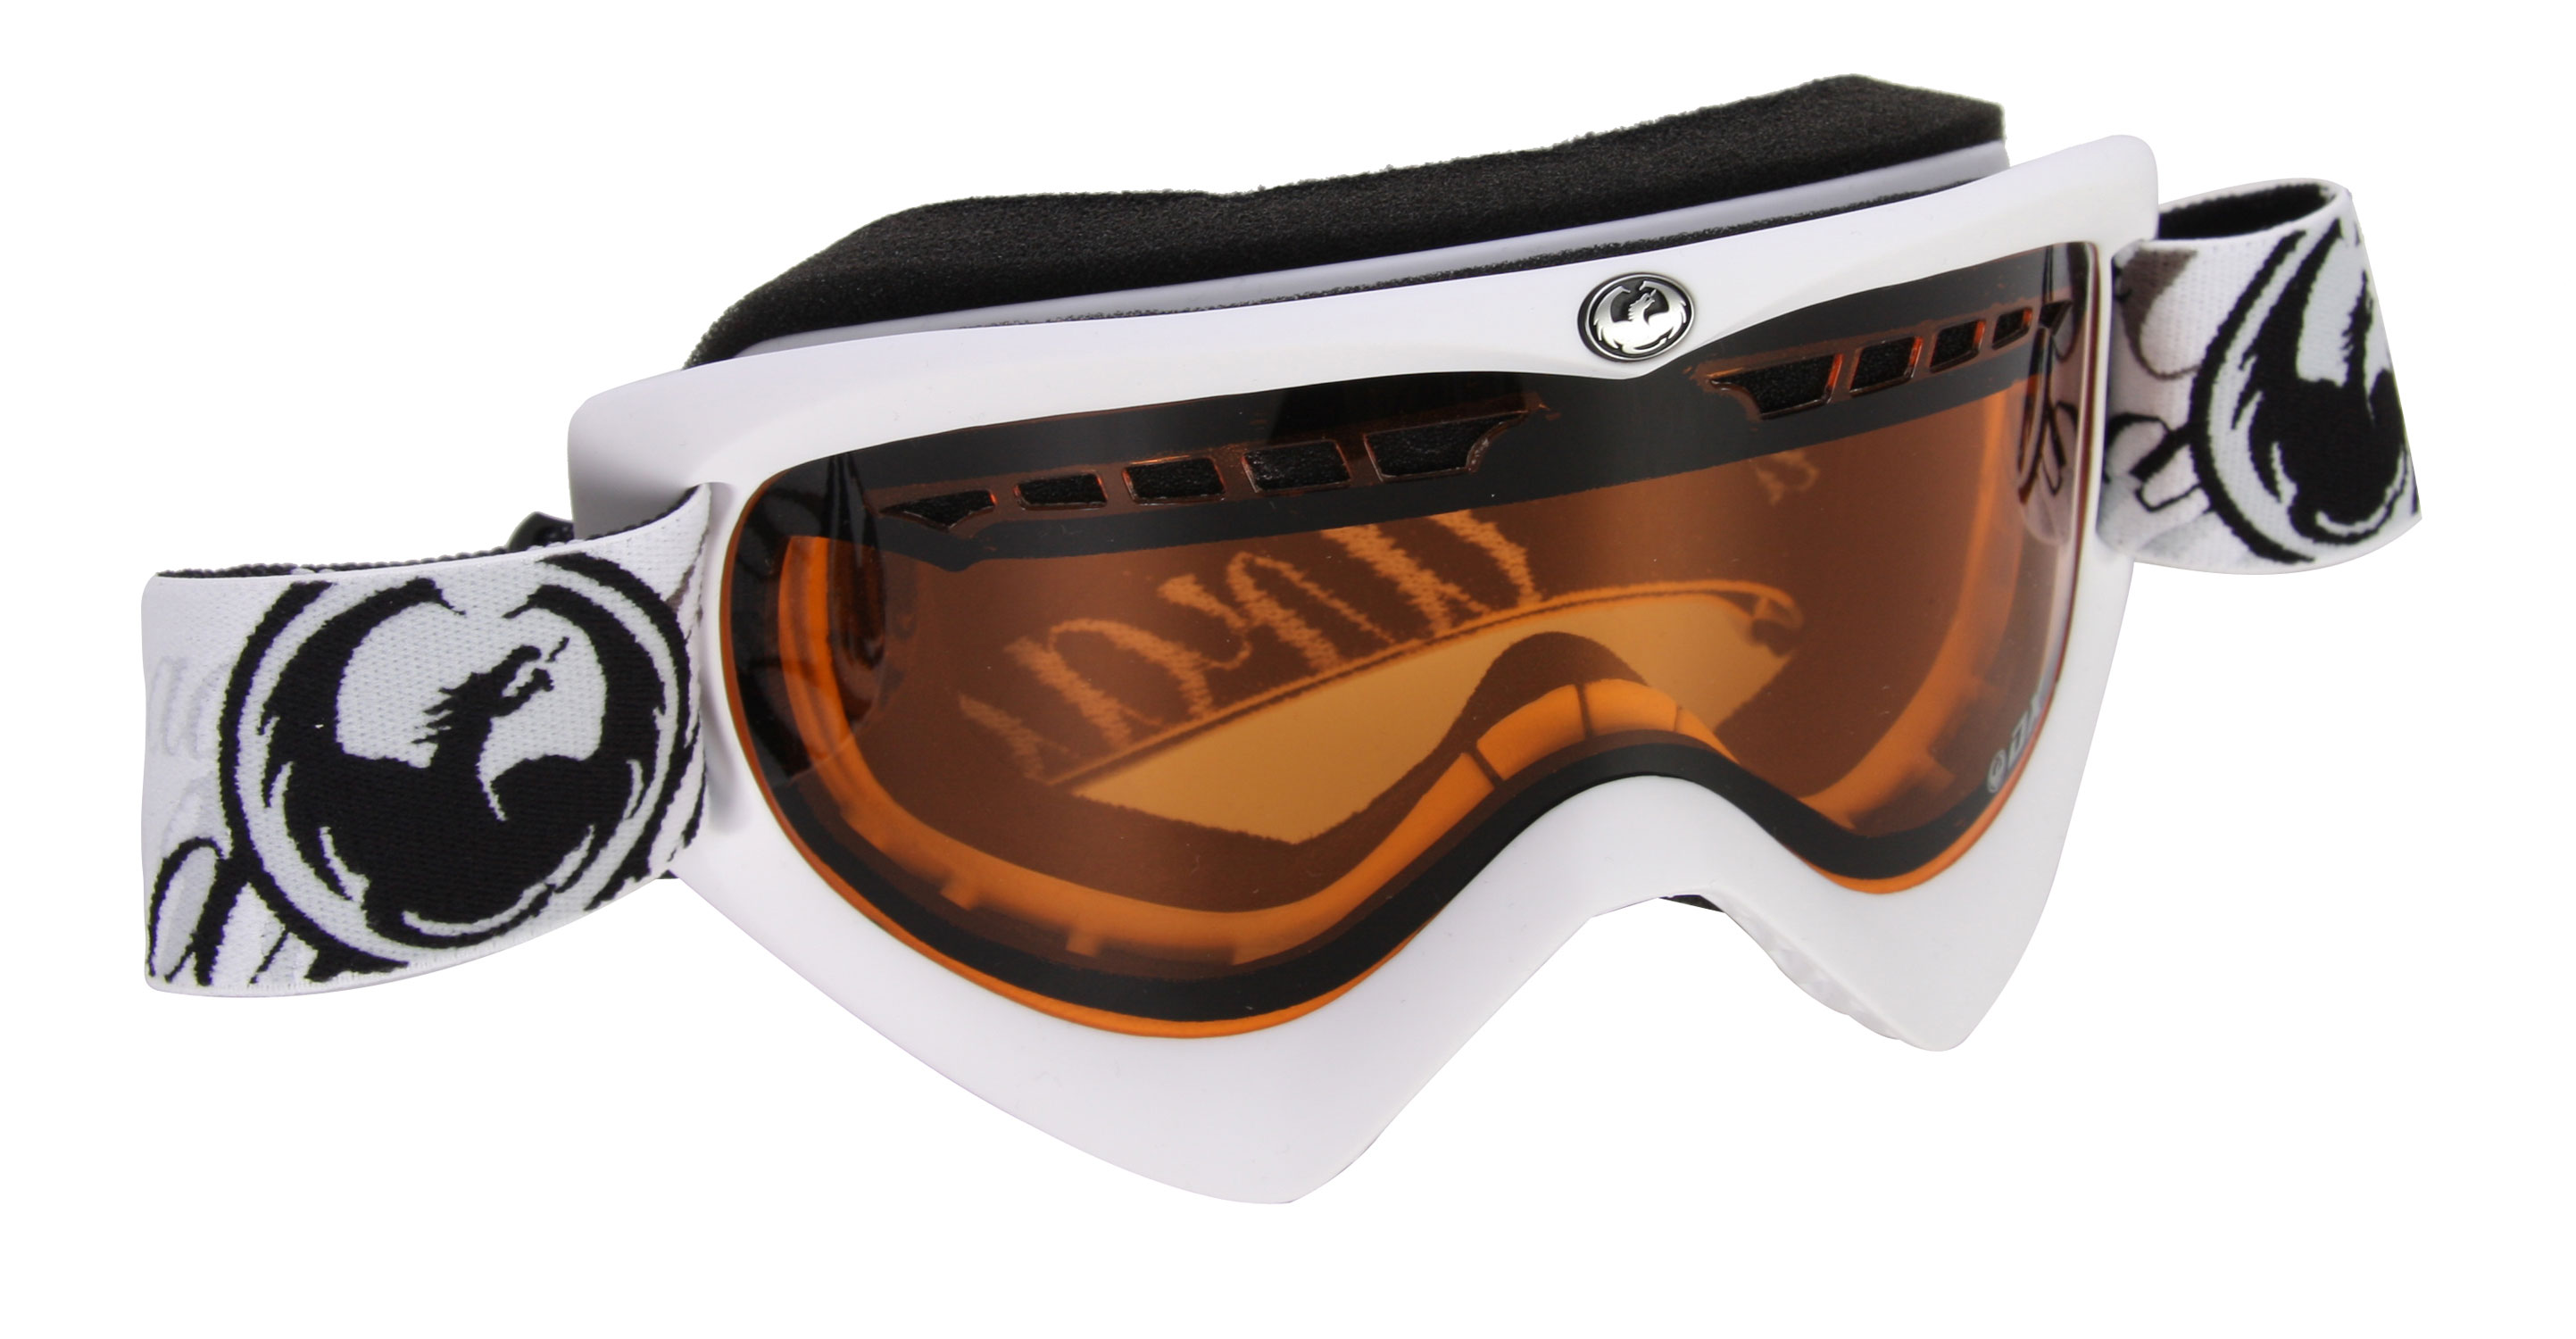 Snowboard Talk about a great sporty pair of snowboarding goggles. The Dragon DX Snowboard Goggles is helmet compatible, truly important when hitting the slopes. This polyurethane frame features microfleece lining, and a replaceable strap guaranteeing ultra comfort all day long. Full UV protection is provided. Anti-fog lens are truly ideal when scoping out the great outdoors. So, be sure to grab on and have a blast this winter.Key Features of The Dragon DX Snowboard Goggles: Helmet Compatible Replaceable Strap Dual Layer Face Foam Micro Fleece Lining 100% UV Protection Super Anti Fog Lens Polyurethane Frame - $27.27